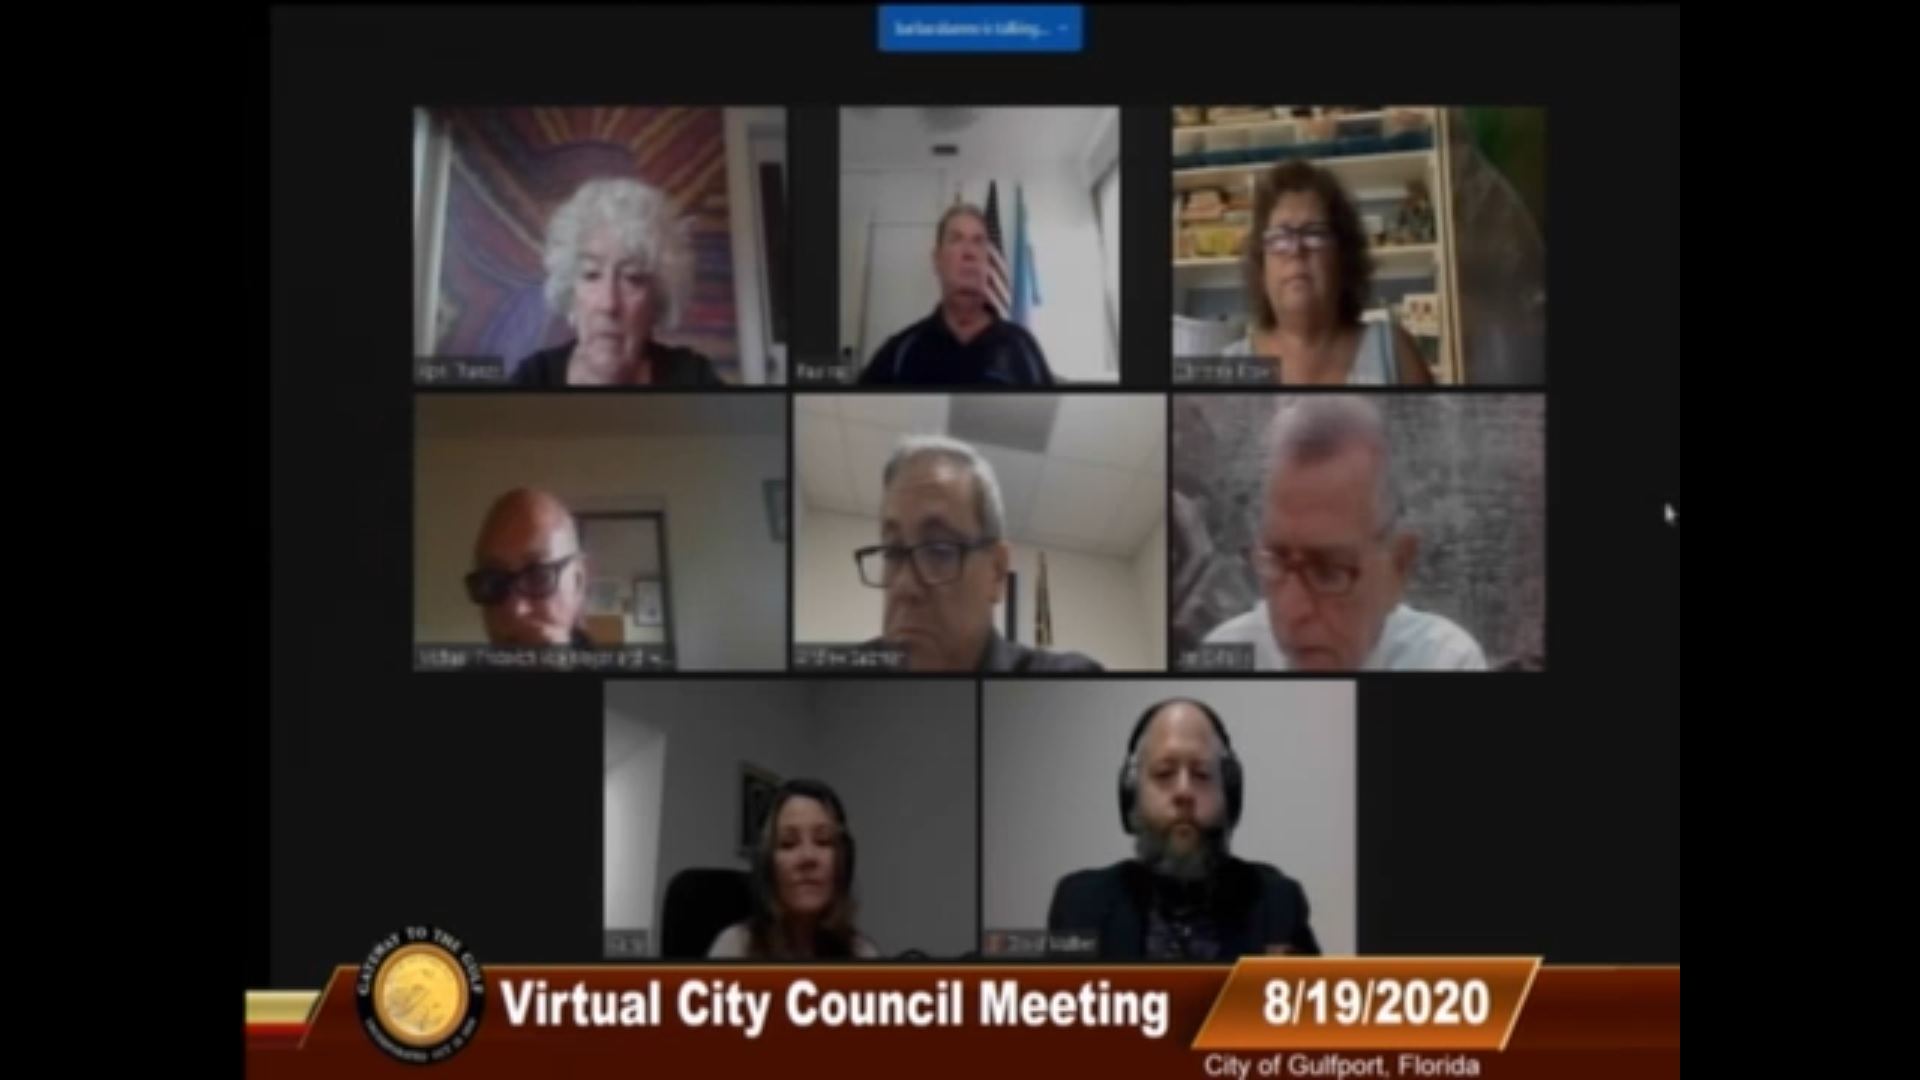 Screenshot of a Gulfport Florida City Council Meeting